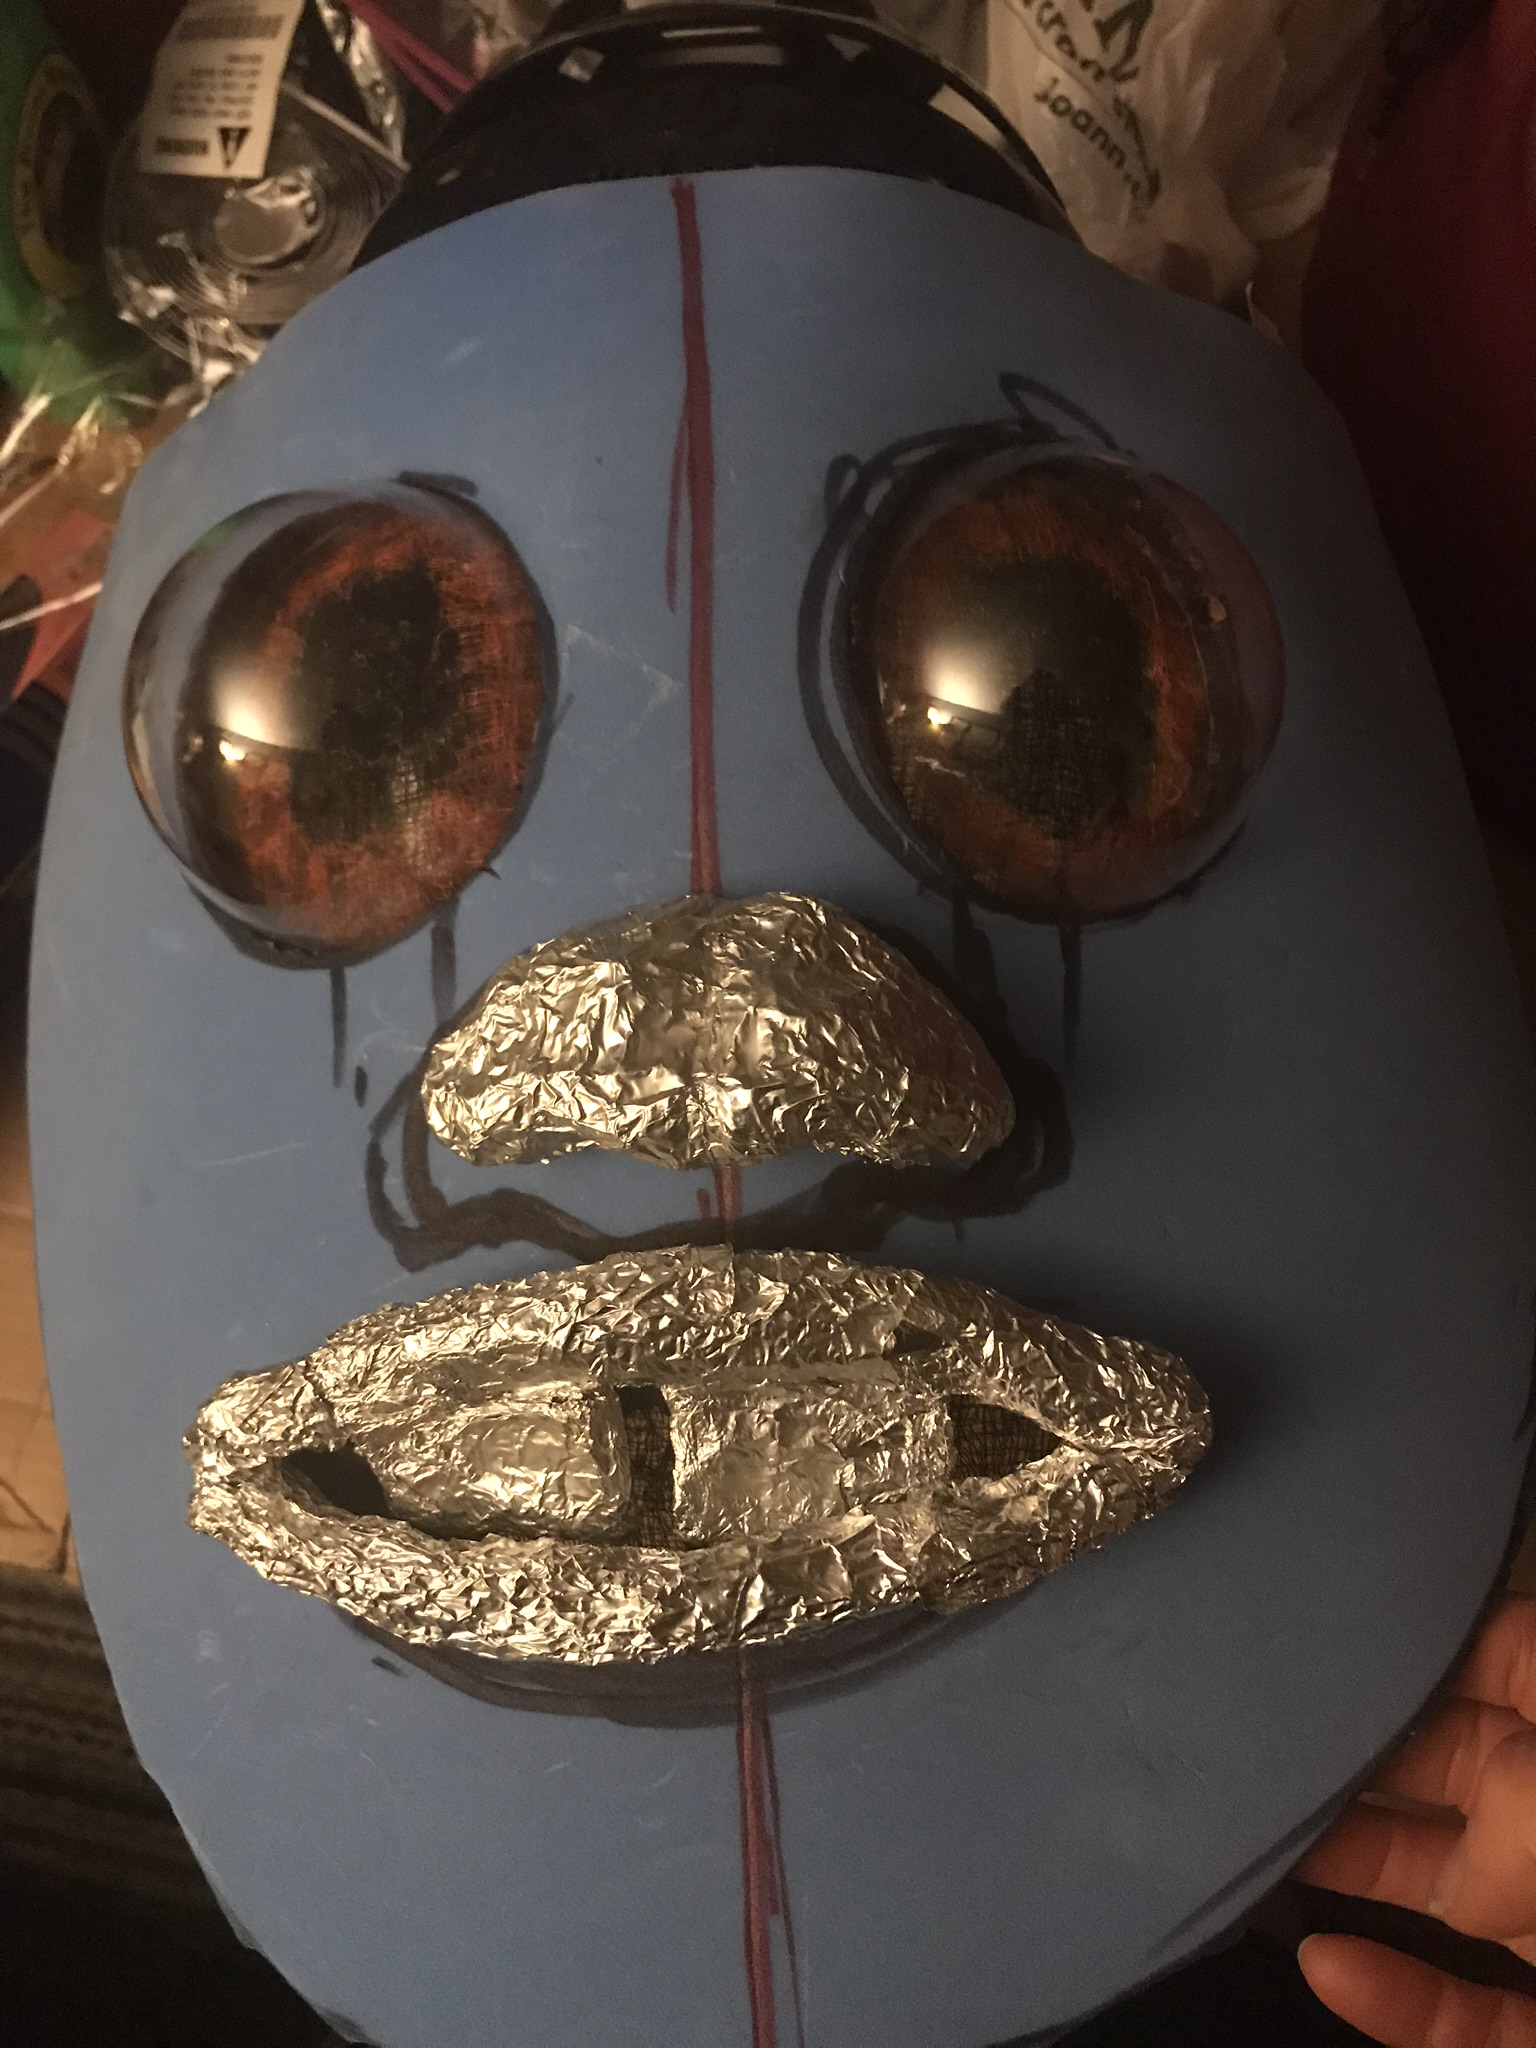 Ewok face mask with foil structure for nose and mouth